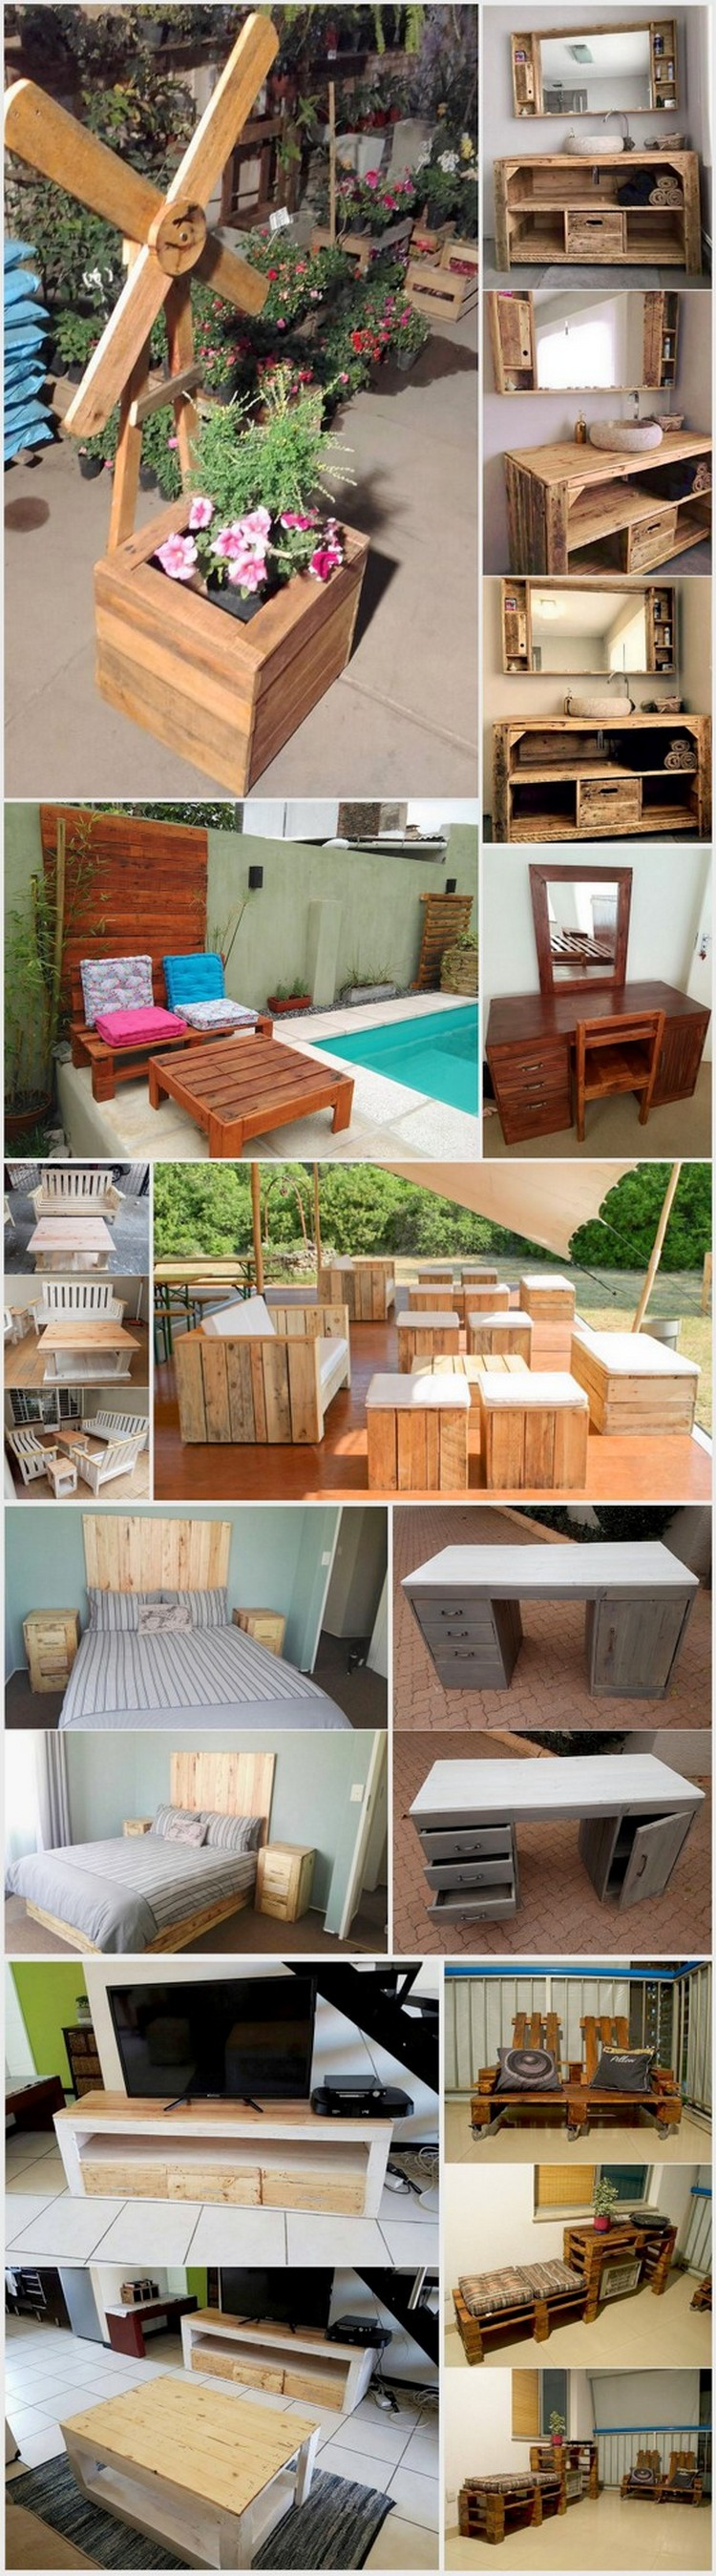 Excellent Ideas with Used Wood Pallets